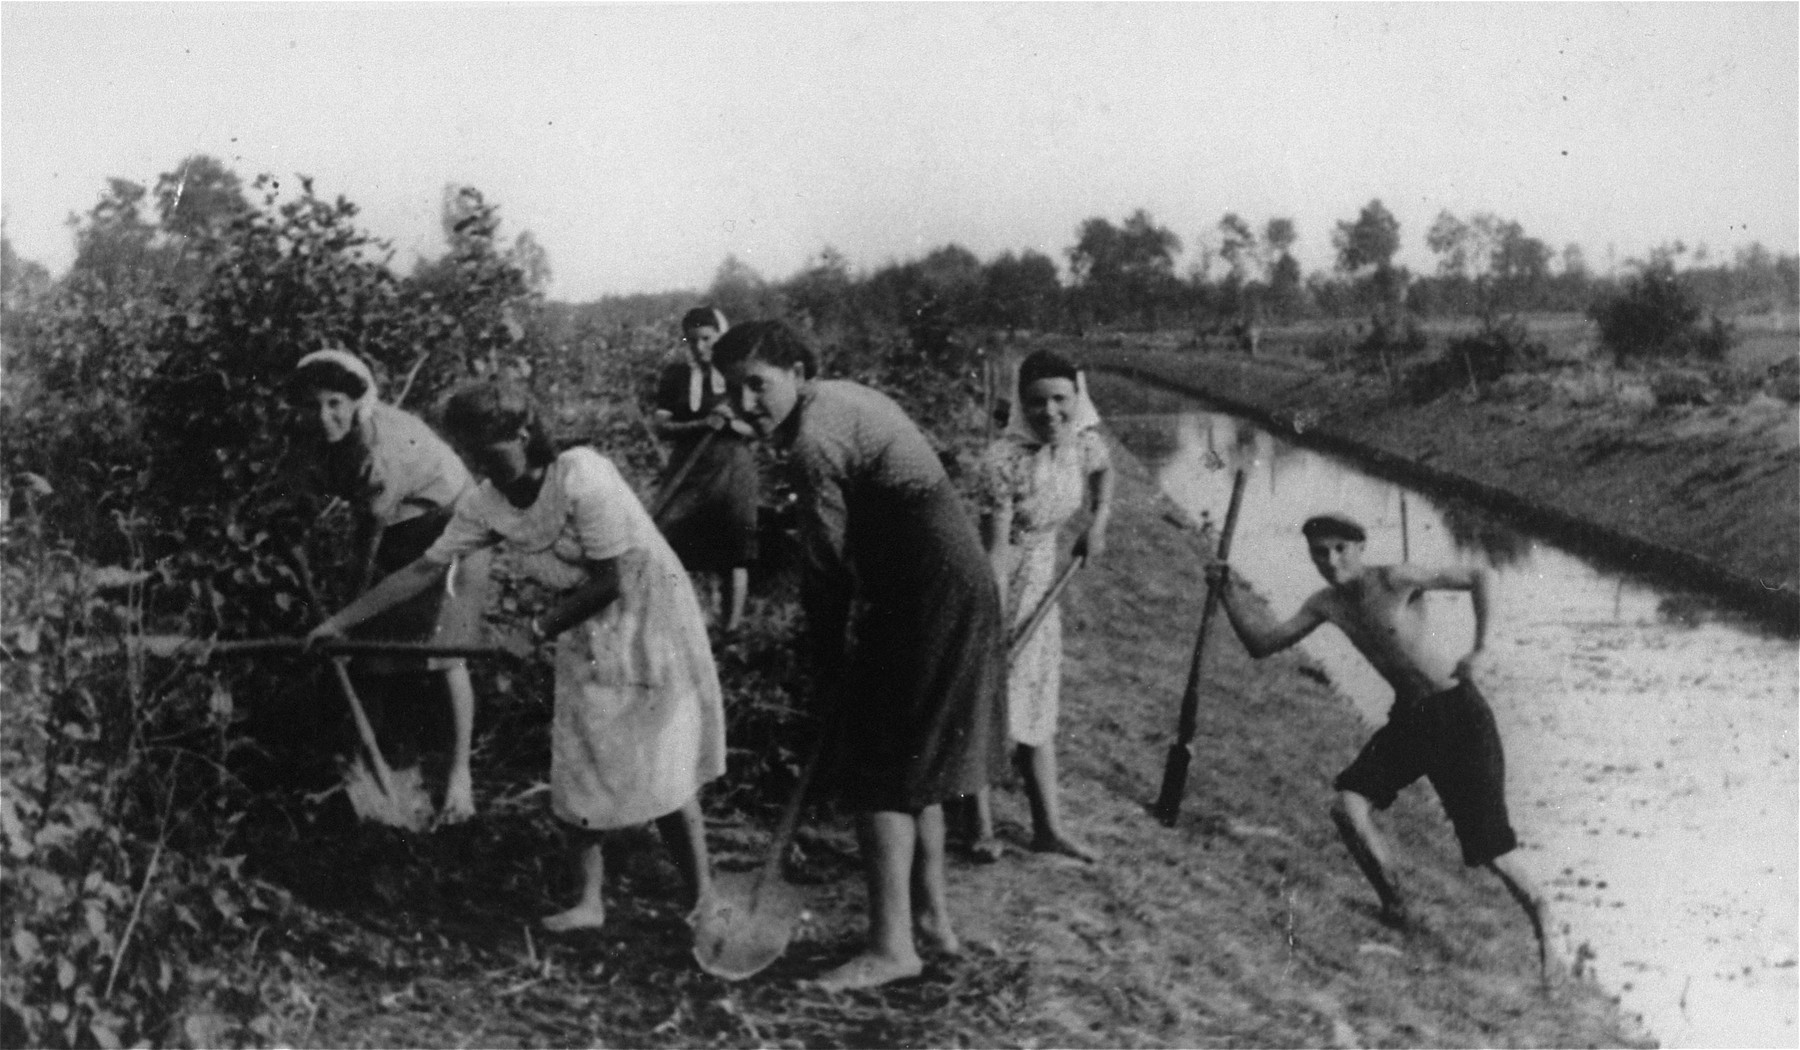 Jews from the Kozienice ghetto at forced labor digging alongside a canal in the nearby village of Wolka.  They are working for the Gorczycki firm who was building a canal.  From left to right are Wasserman, Salka Bendler, Anka Mandelbaum, Sabina Goldstein and Bezalel Berneman.